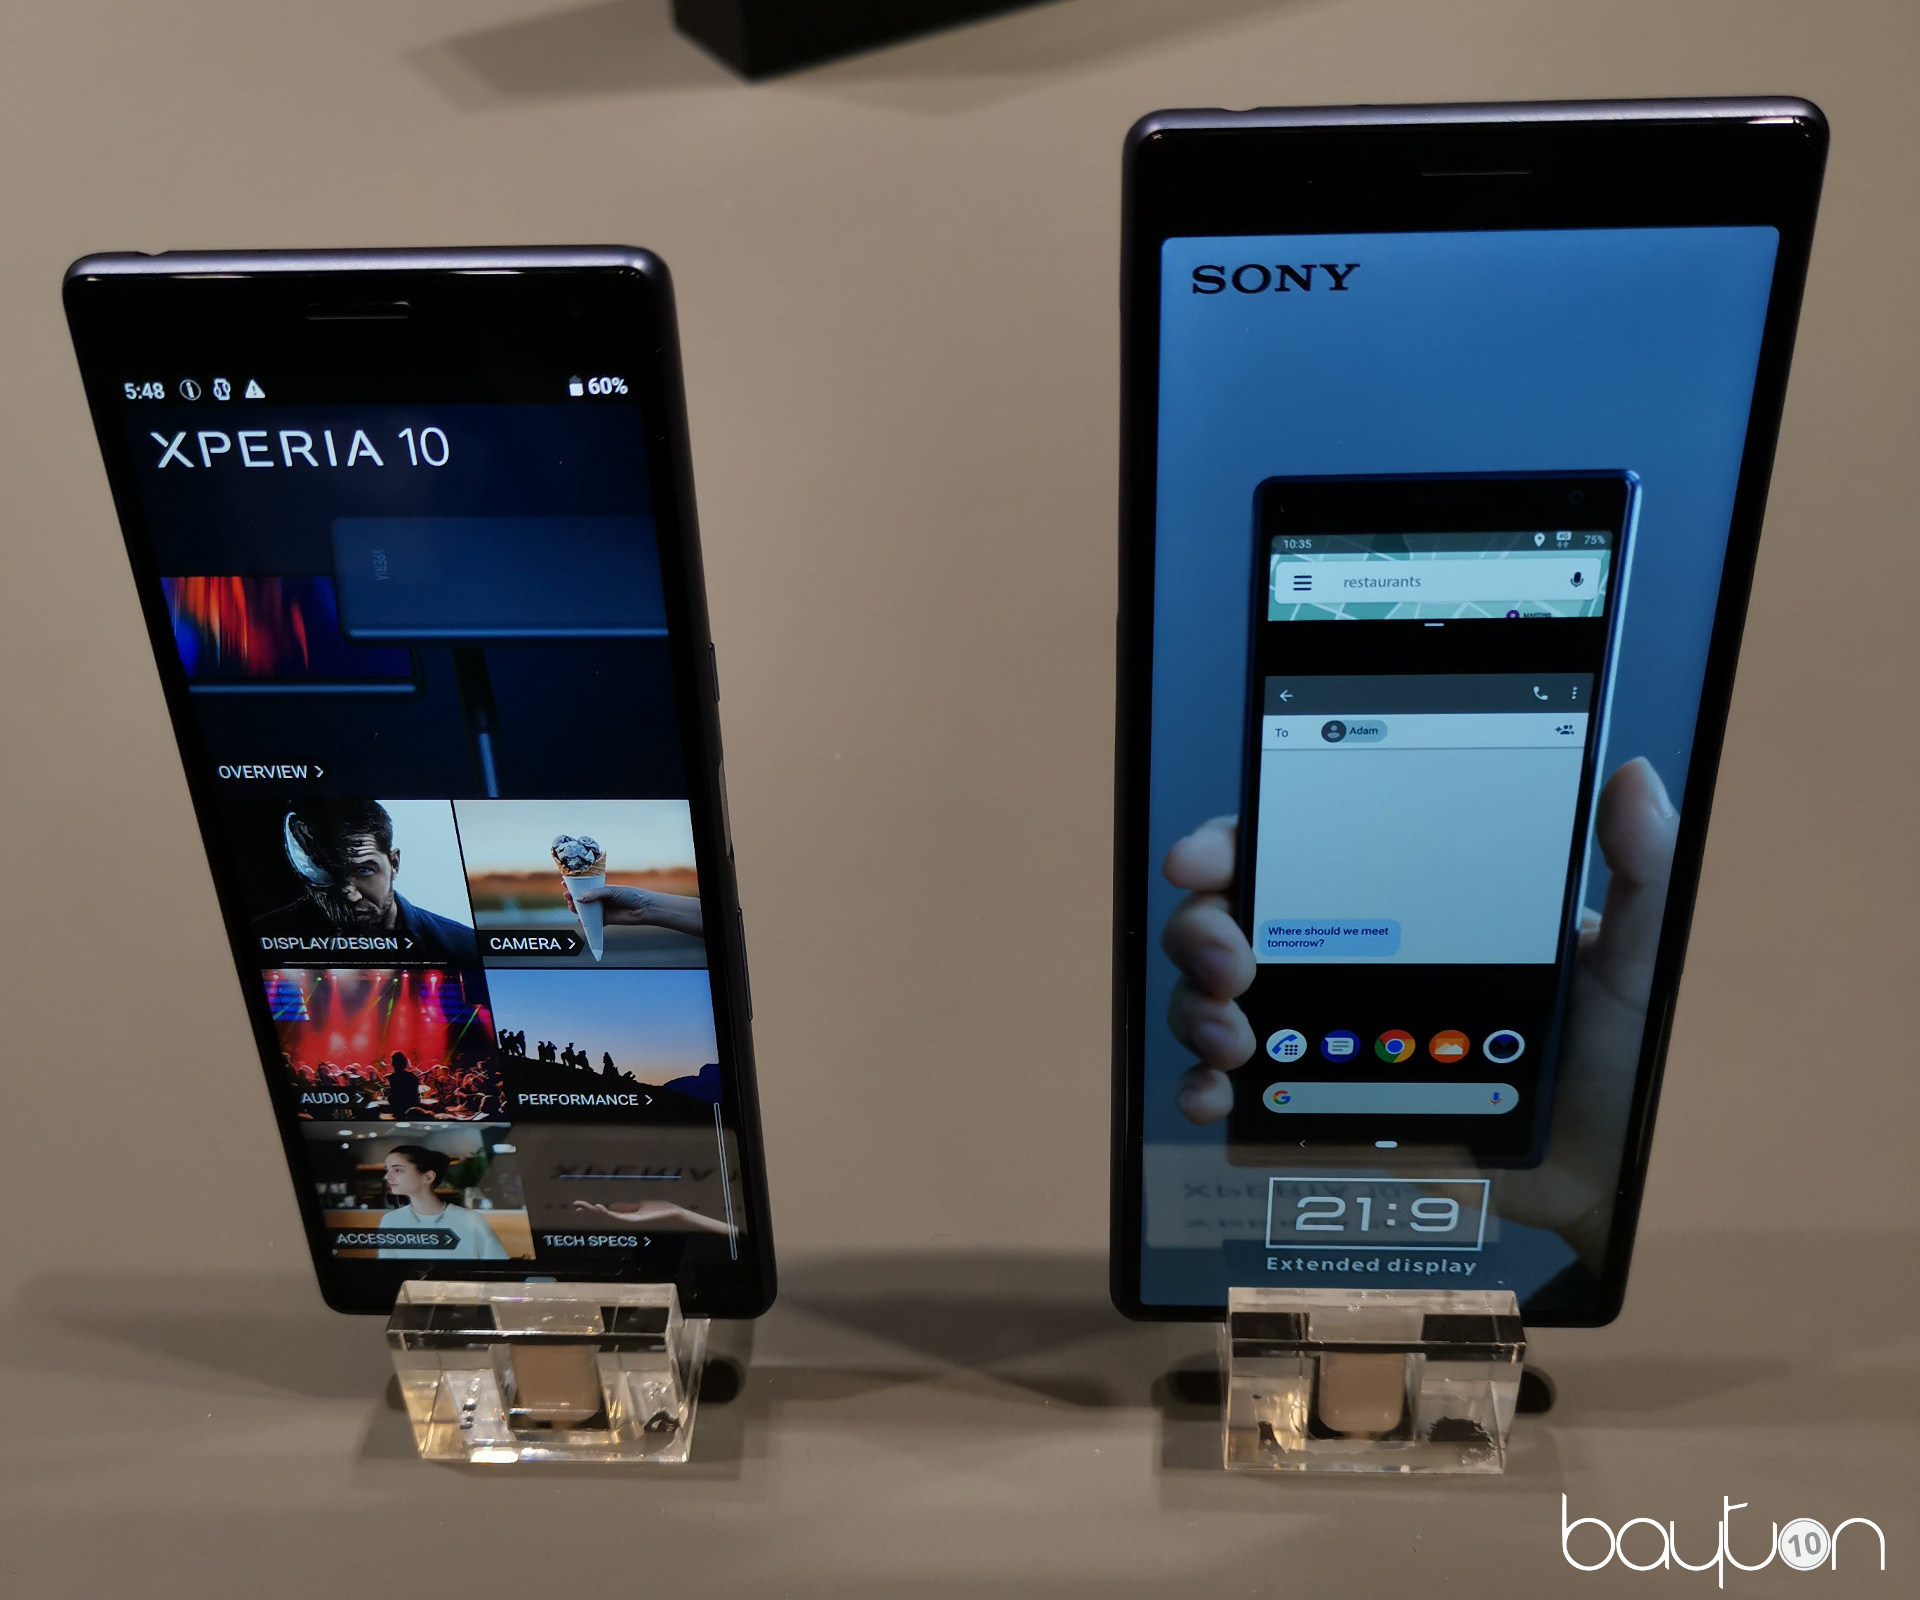 The Xperia 10 & 10 Plus